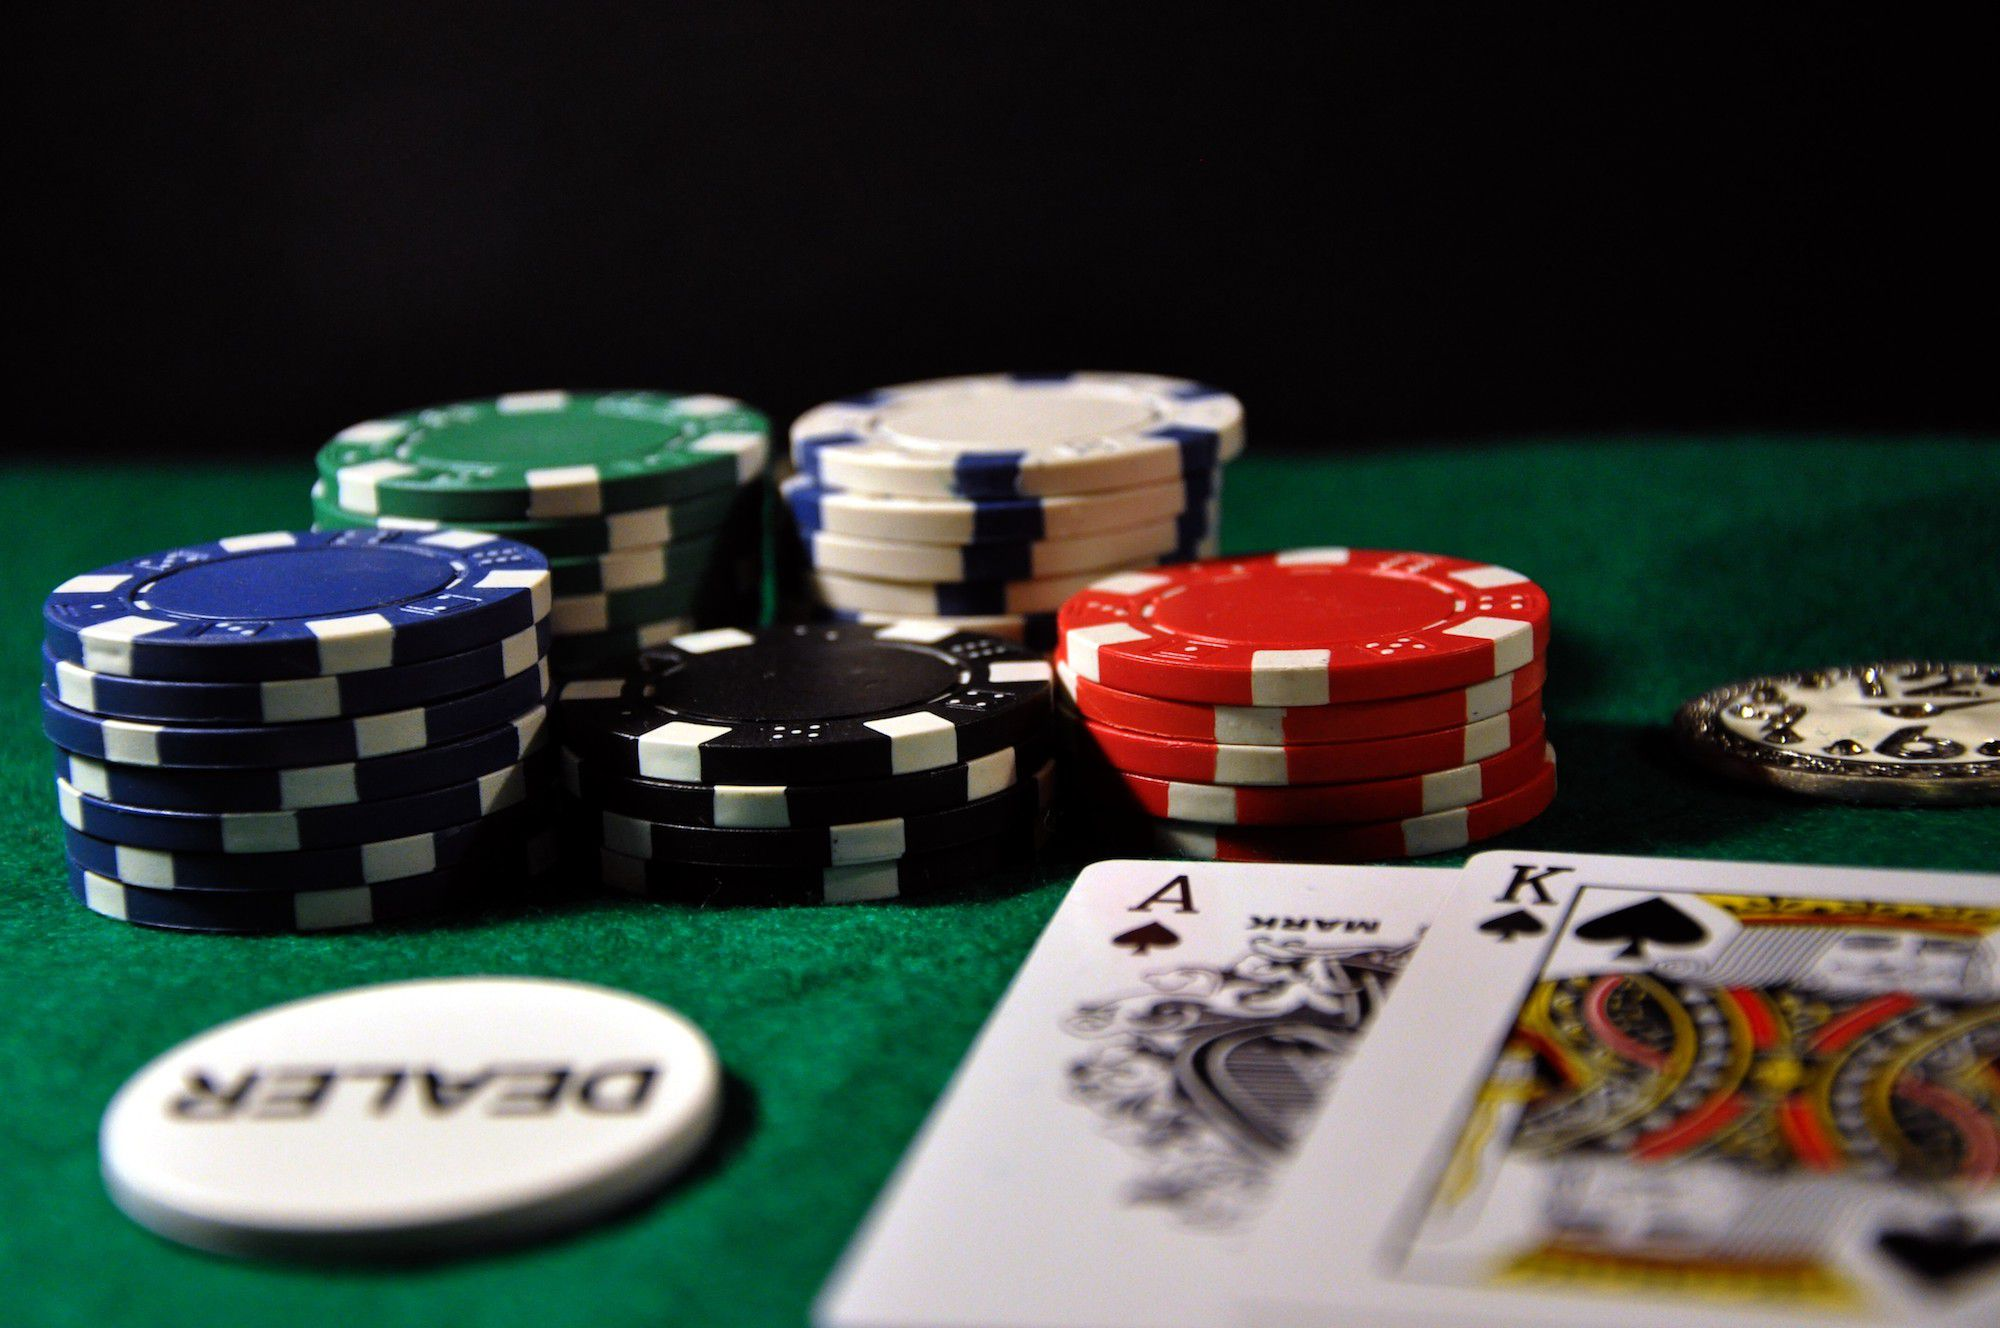 COVID-19 Outbreak: Here Are The 4 Tips For Improving Poker Game Online!